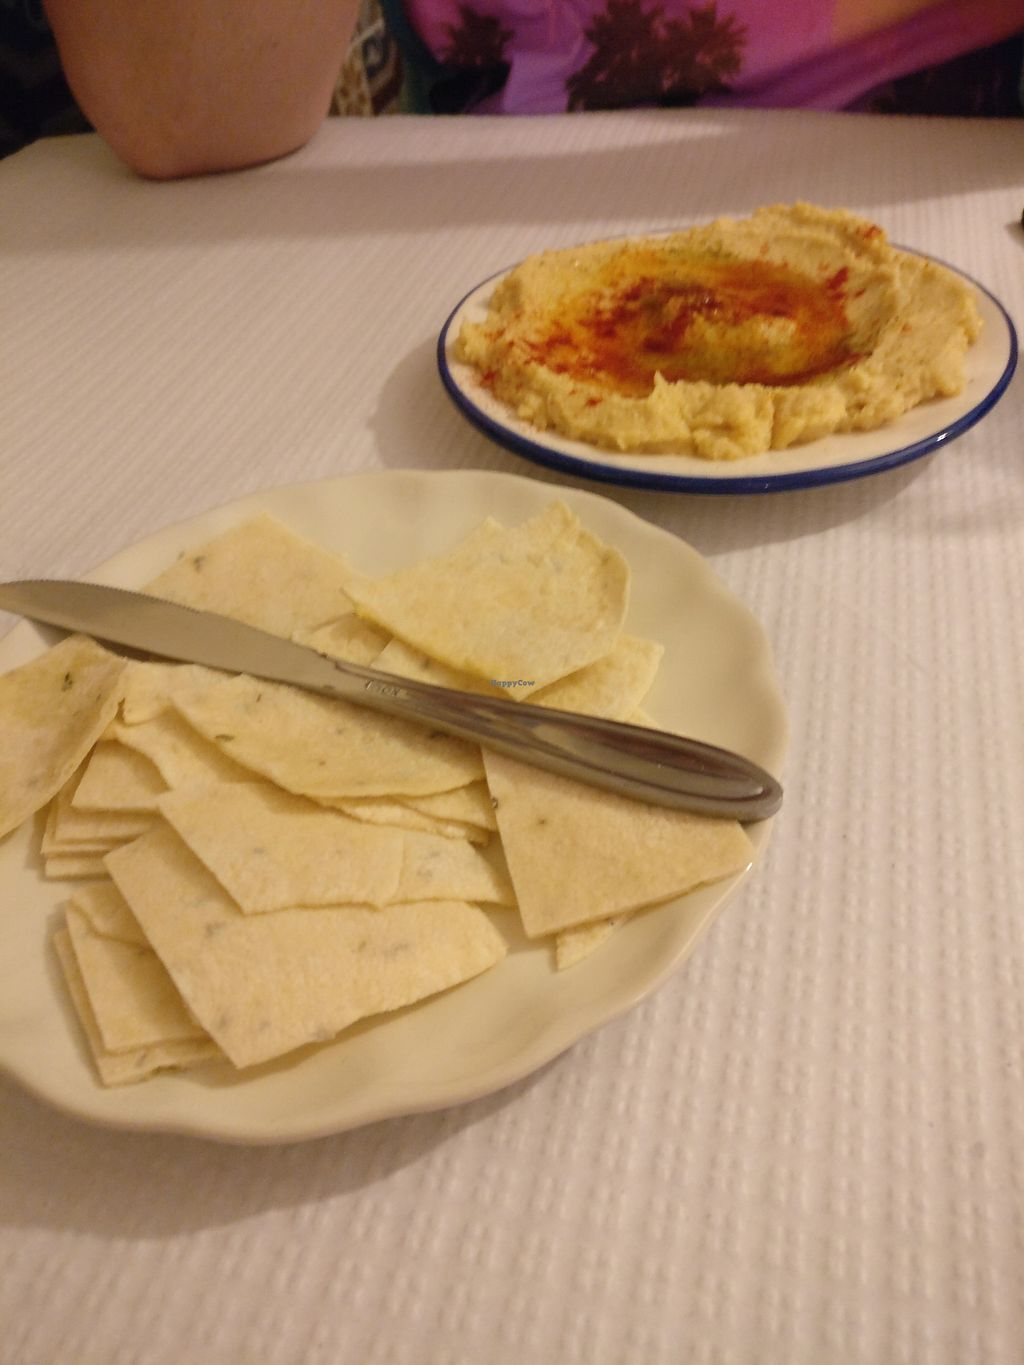 """Photo of Sabores do Sebouh  by <a href=""""/members/profile/Meaks"""">Meaks</a> <br/>Hummus <br/> June 26, 2017  - <a href='/contact/abuse/image/37498/273835'>Report</a>"""